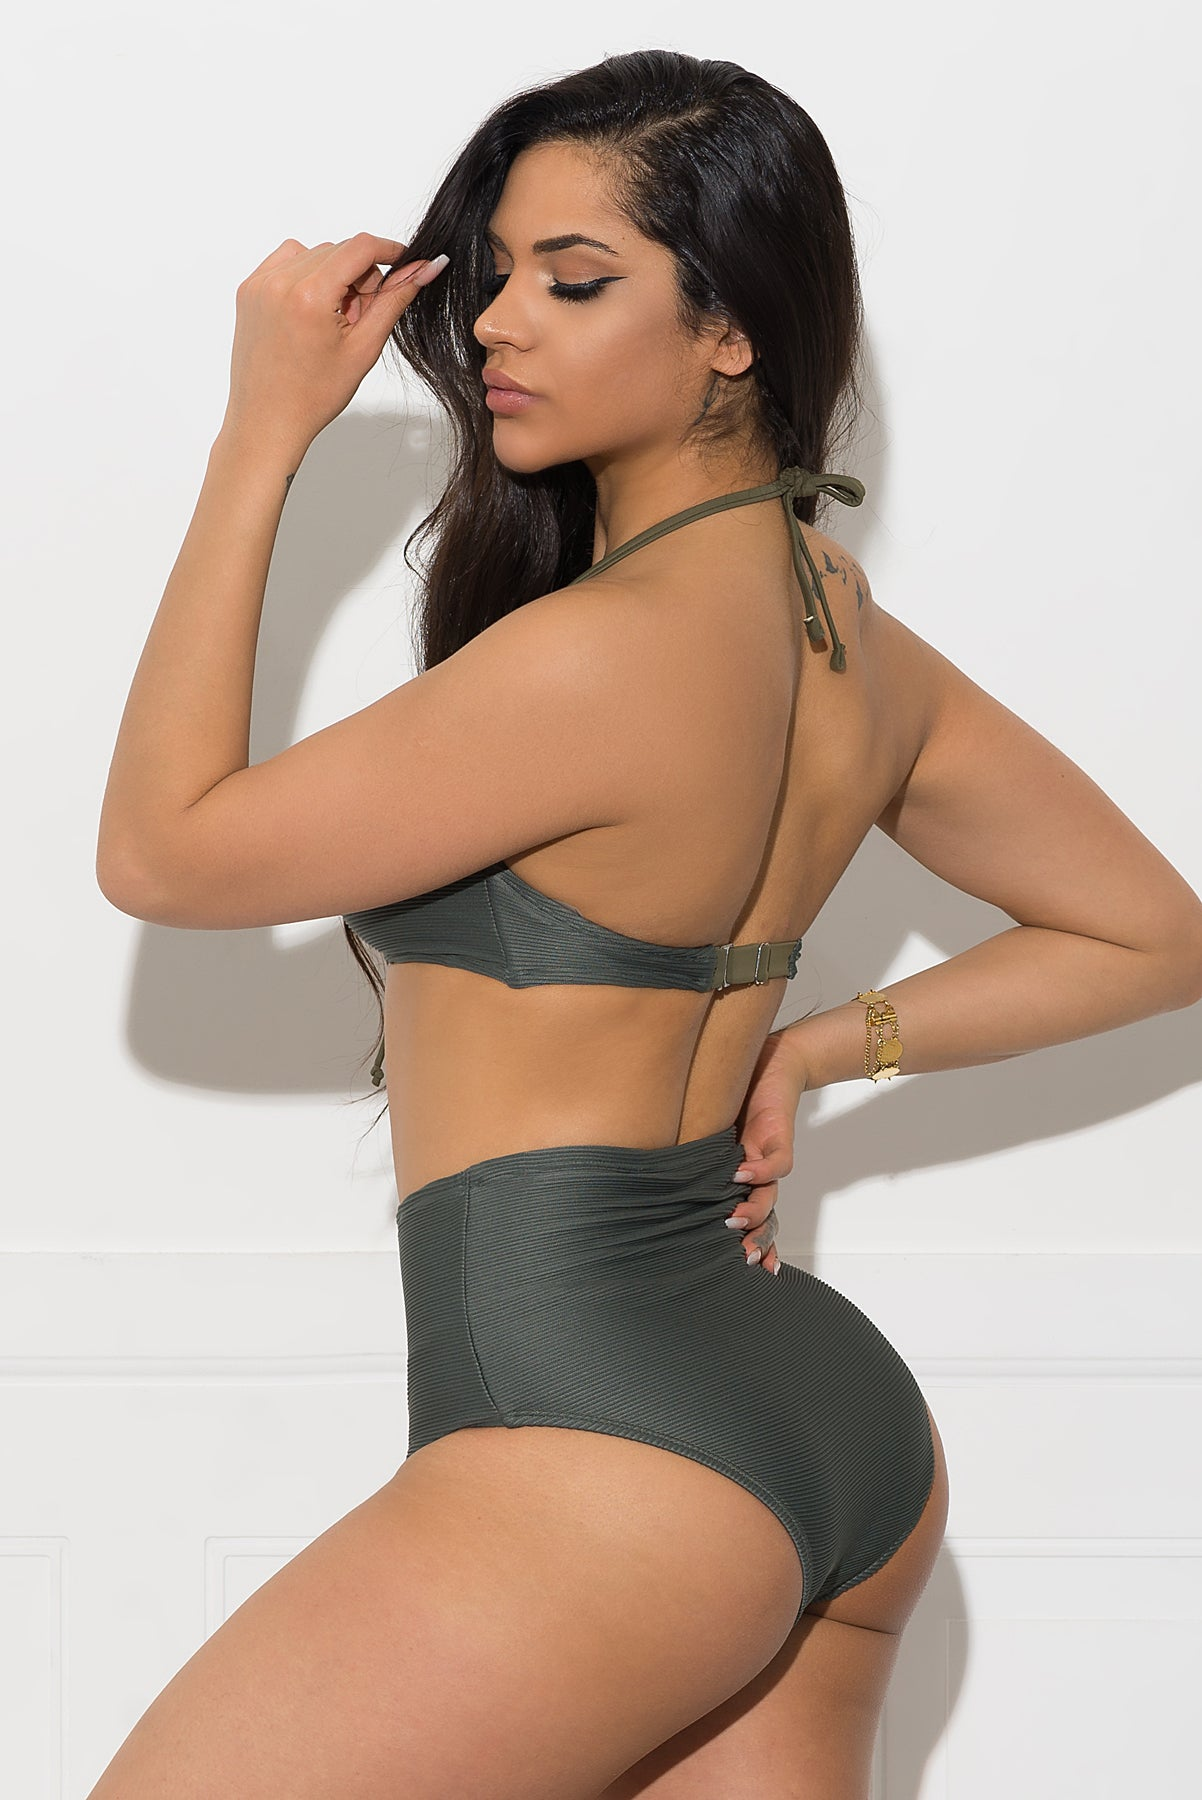 Sun Island Two Piece Swimsuit - Olive Green